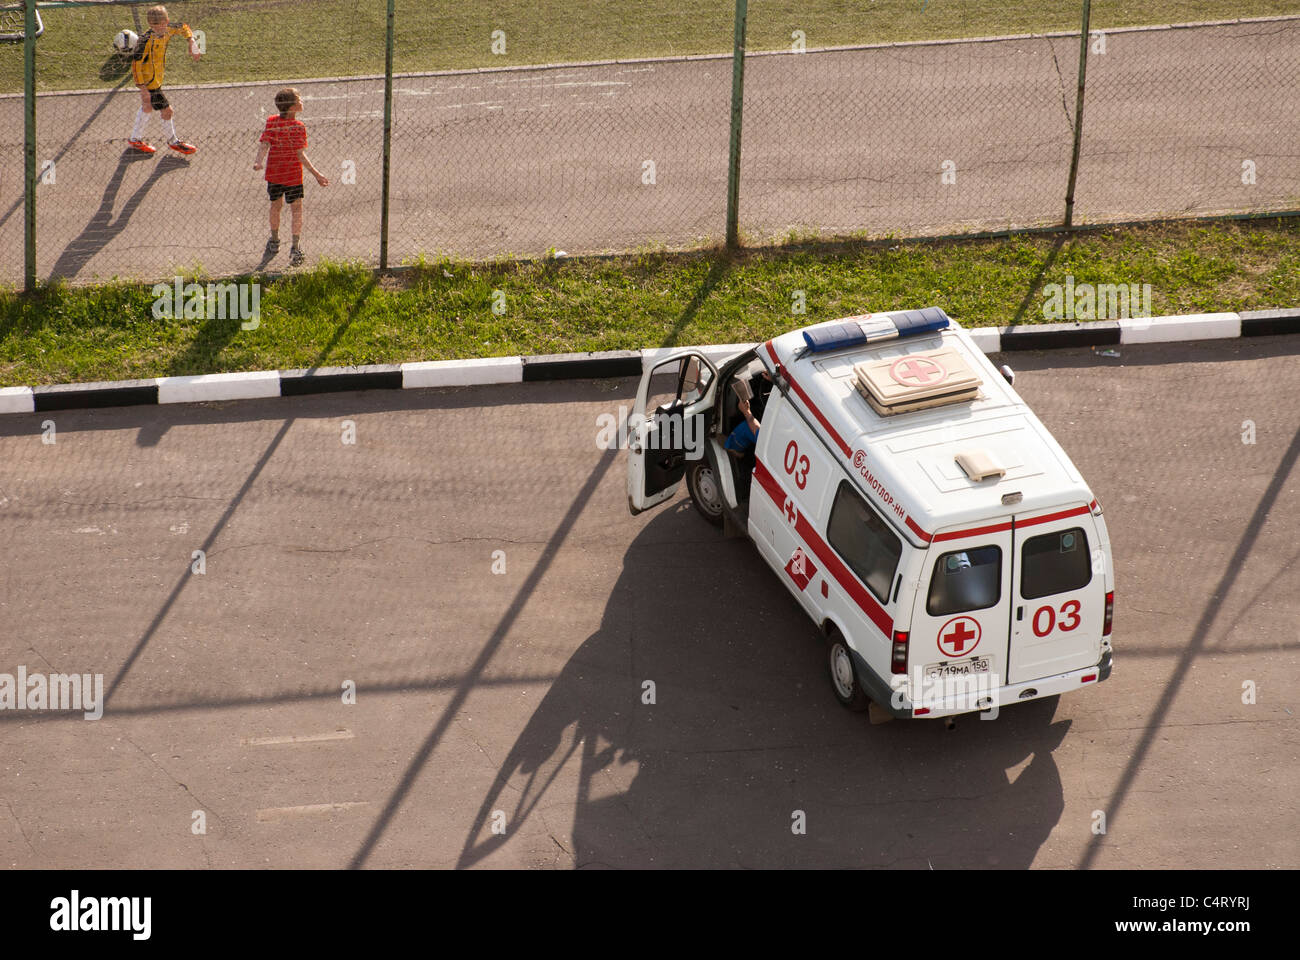 Ambulance car close to the soccer stadium during the match - Stock Image